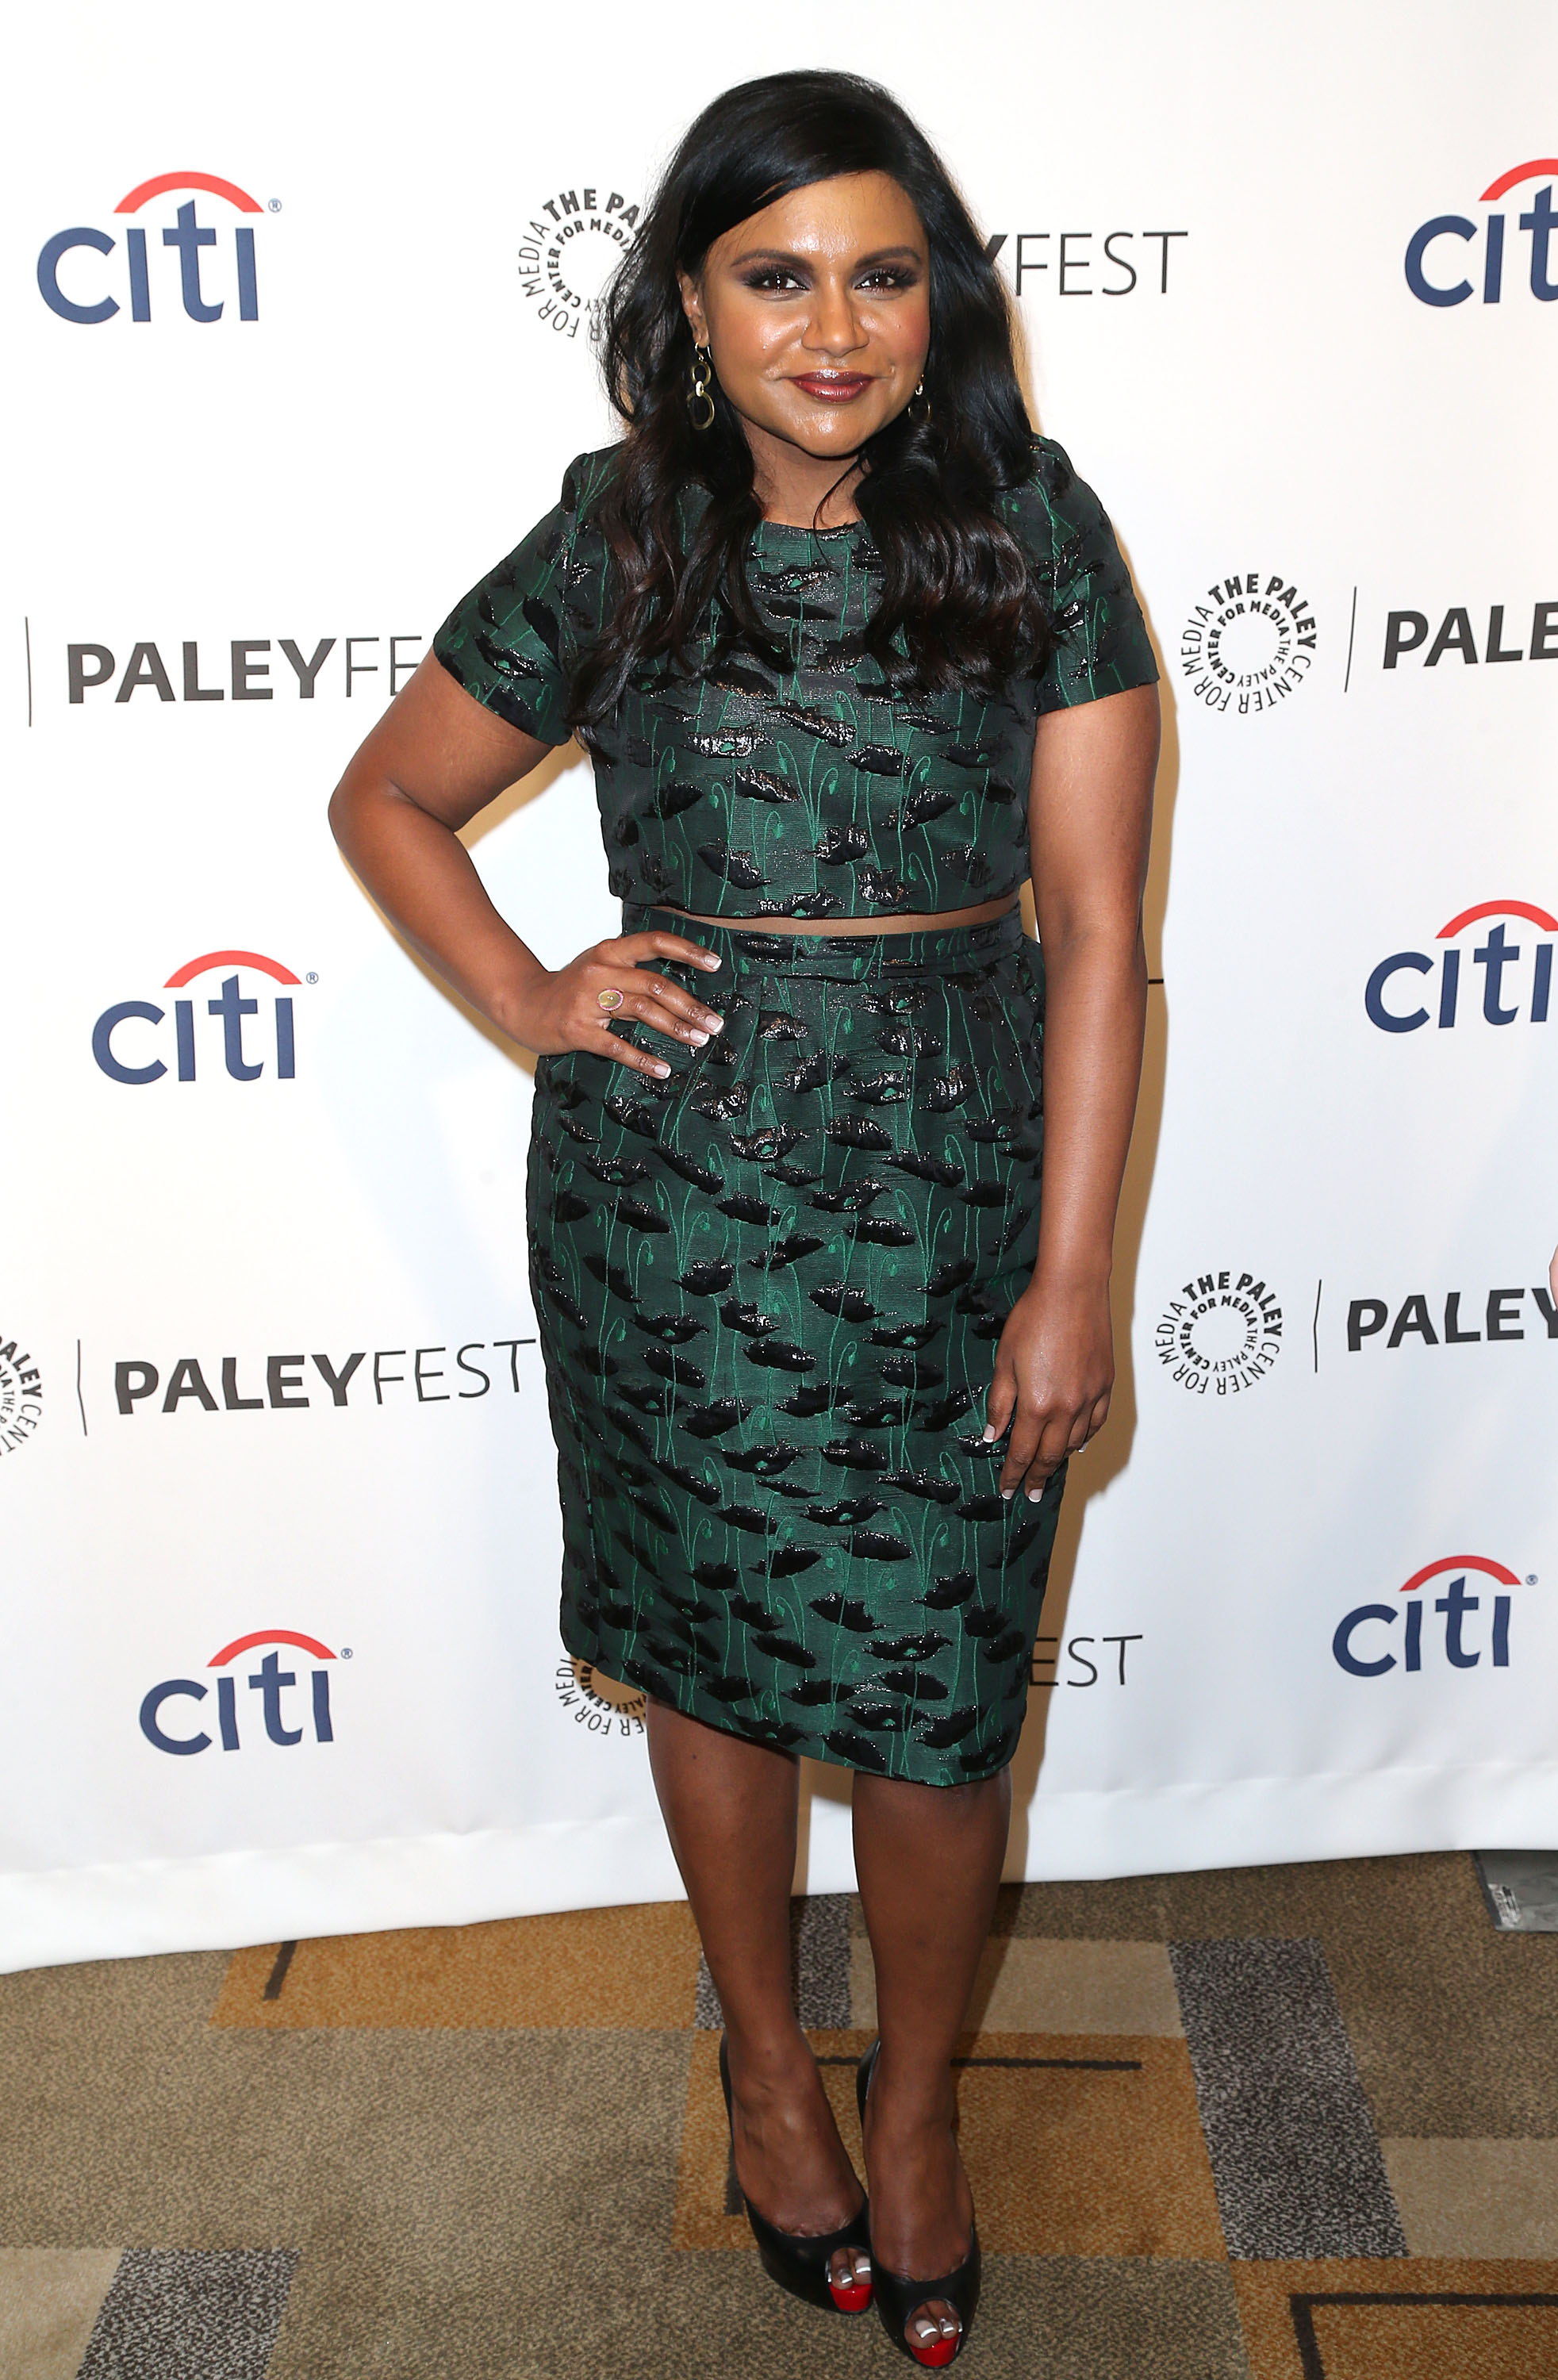 Mindy Kaling Wears Hair Extensions Plus 10 More Fashion And Beauty